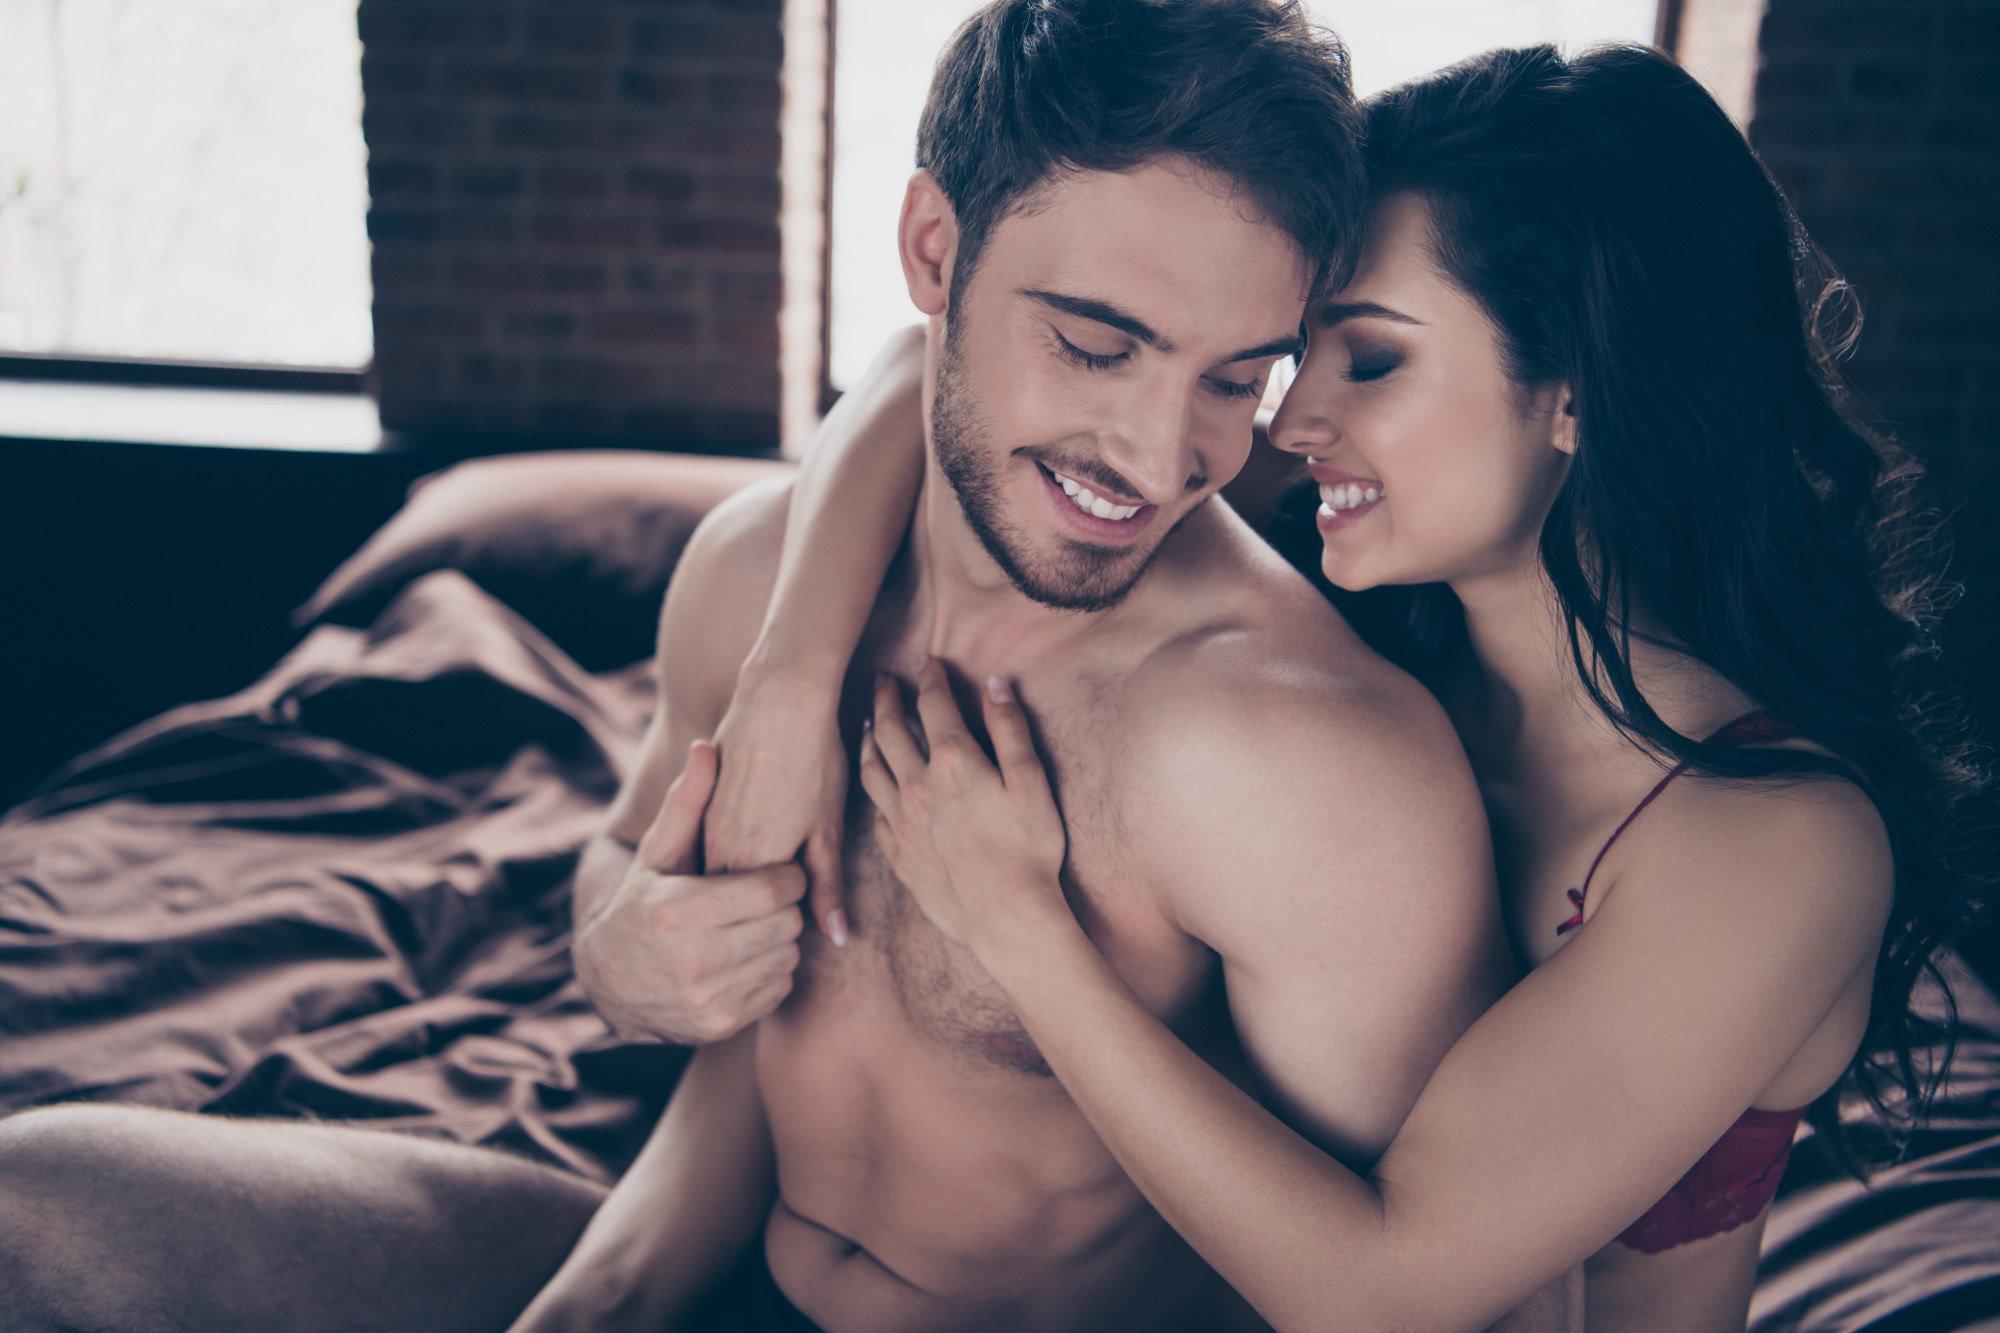 5 Surprising Health Benefits of Watching Porn